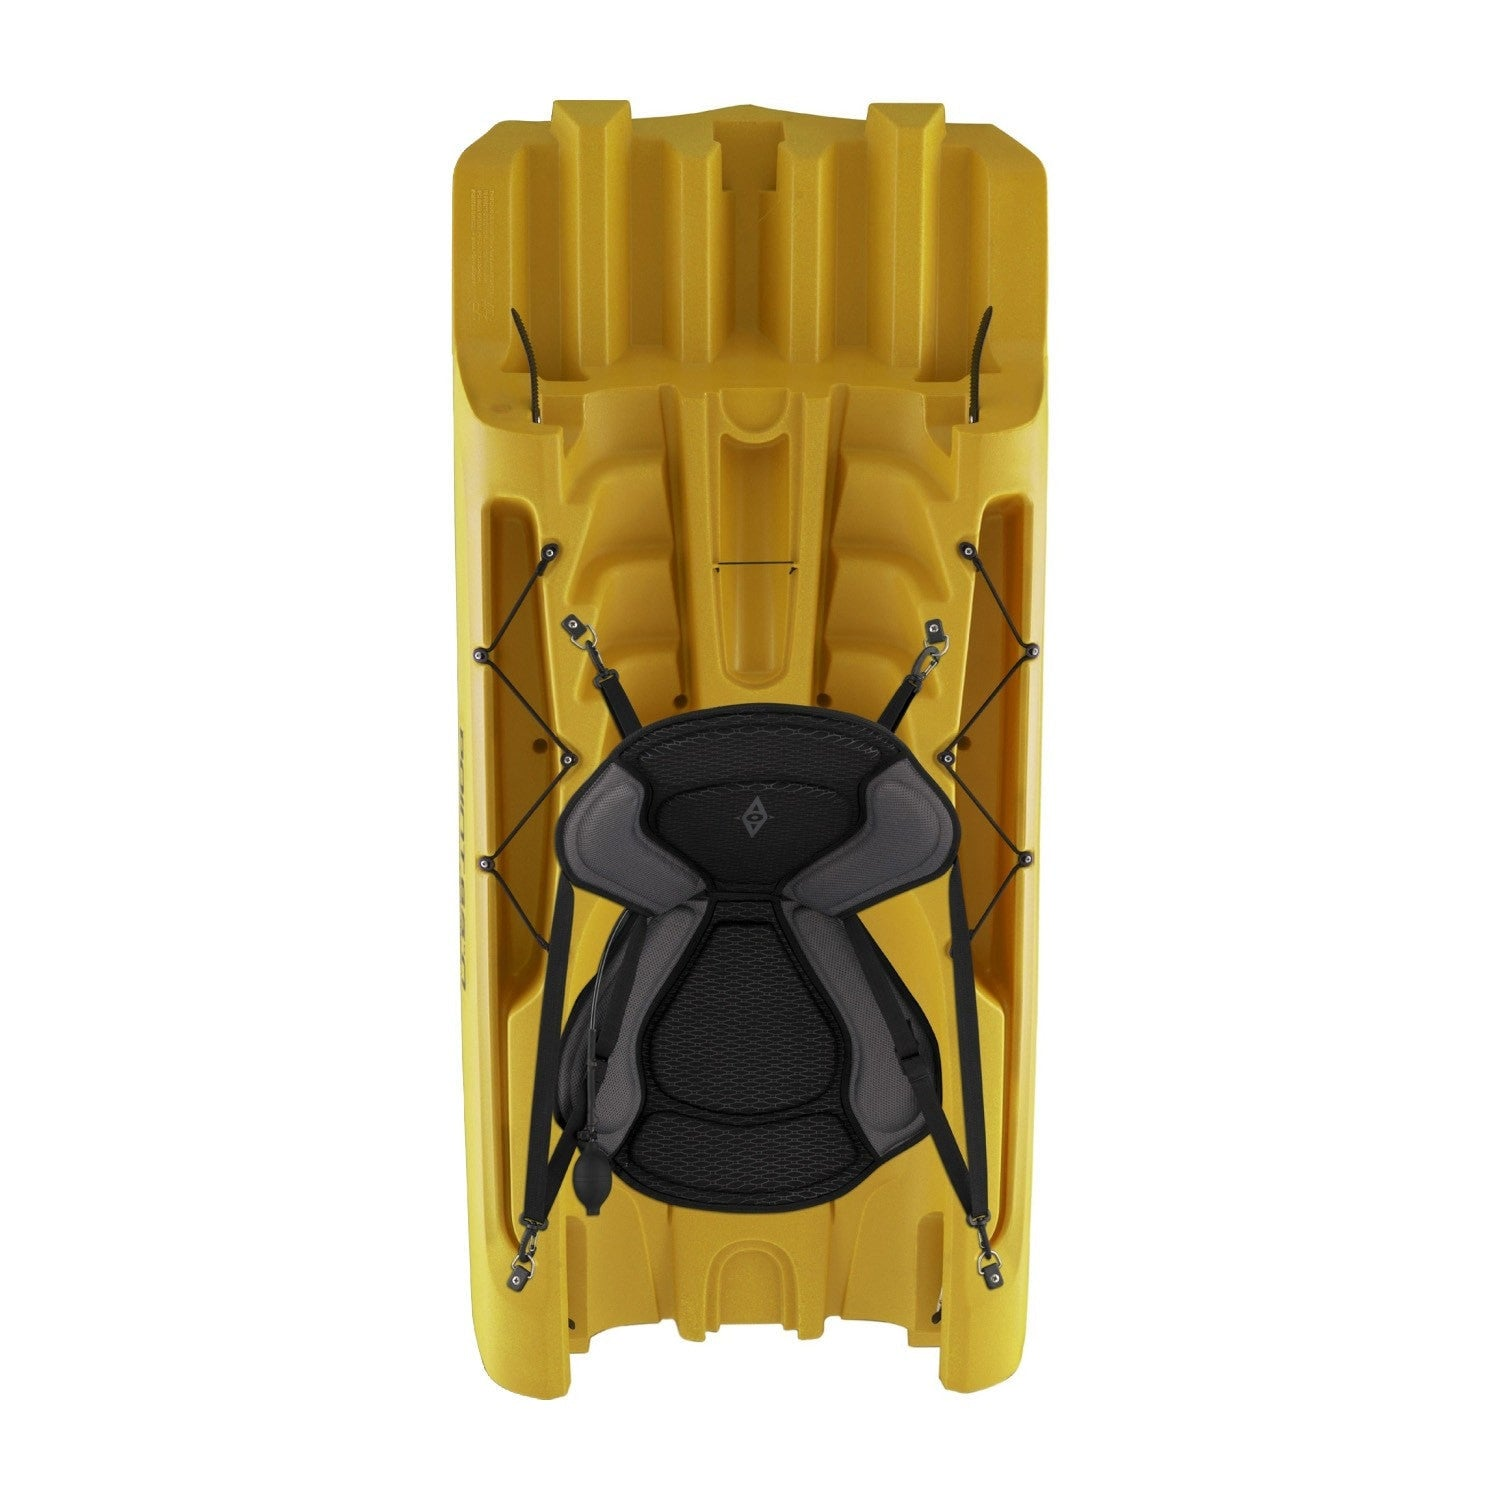 Point 65 Tequila! GTX Modular Kayak - Mid Section - Yellow - Kayak Creek